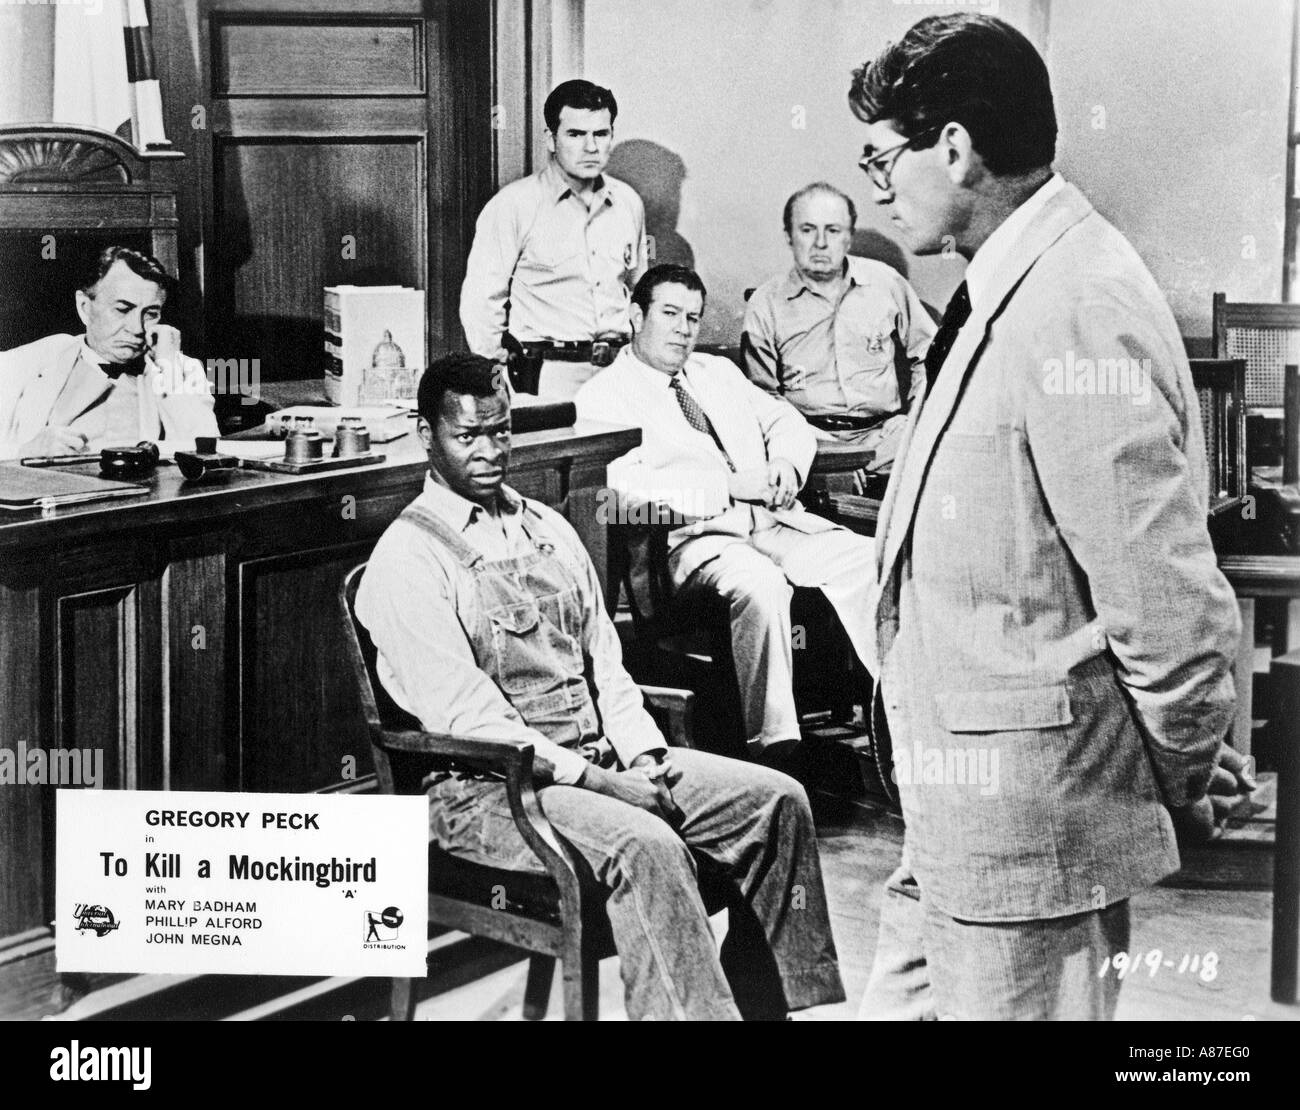 TO KILL A MOCKINGBIRD 1962 UI film with Gregory Peck at right - Stock Image